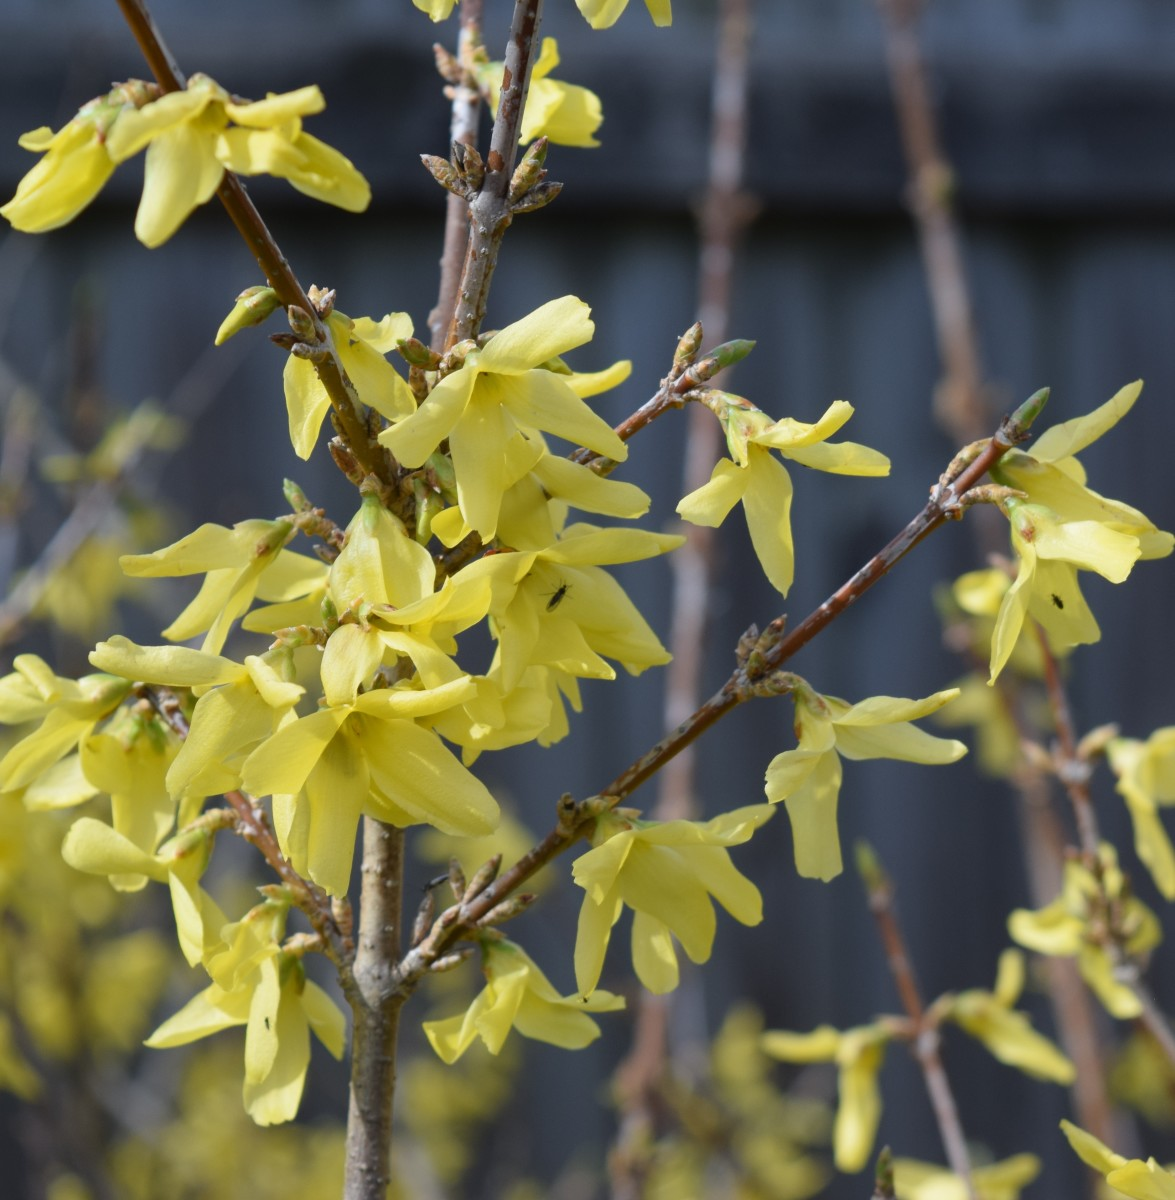 Forsythia already attracts insects.